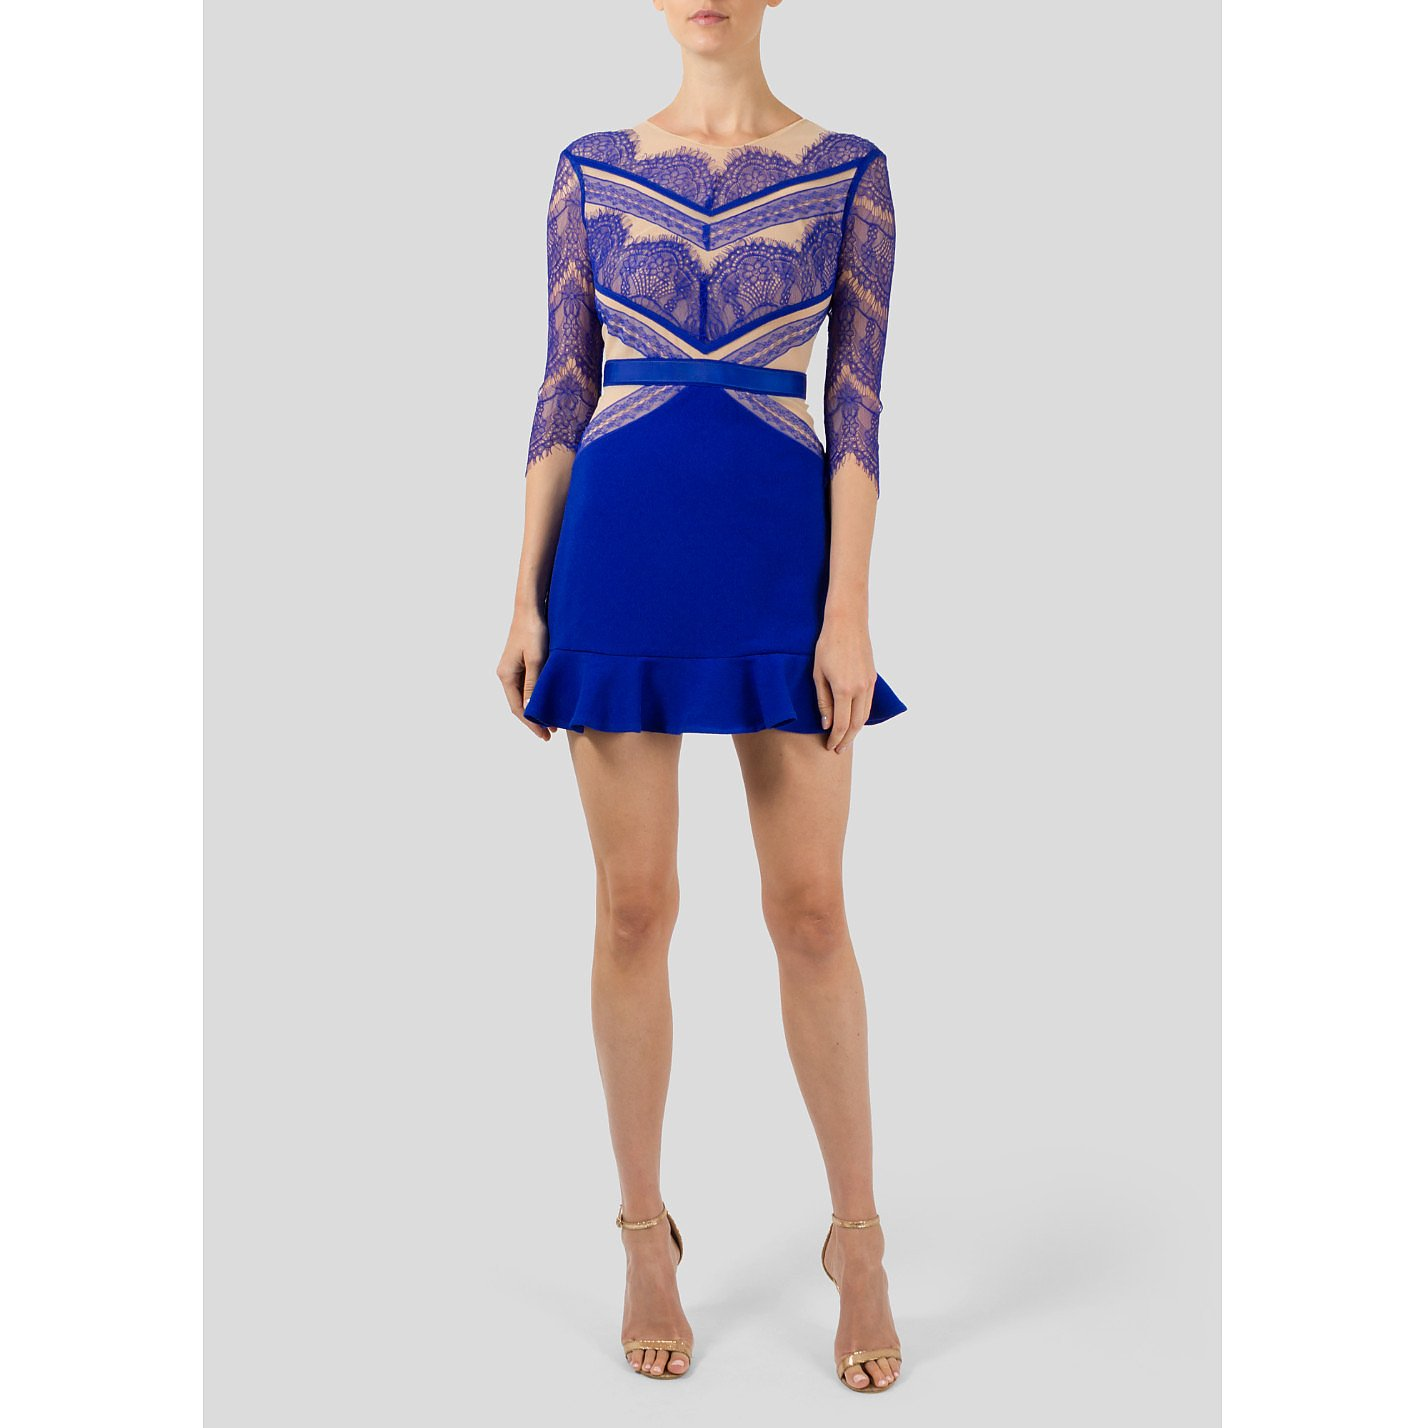 Three Floor Lace with Mini Dress with Ruffle Skirt